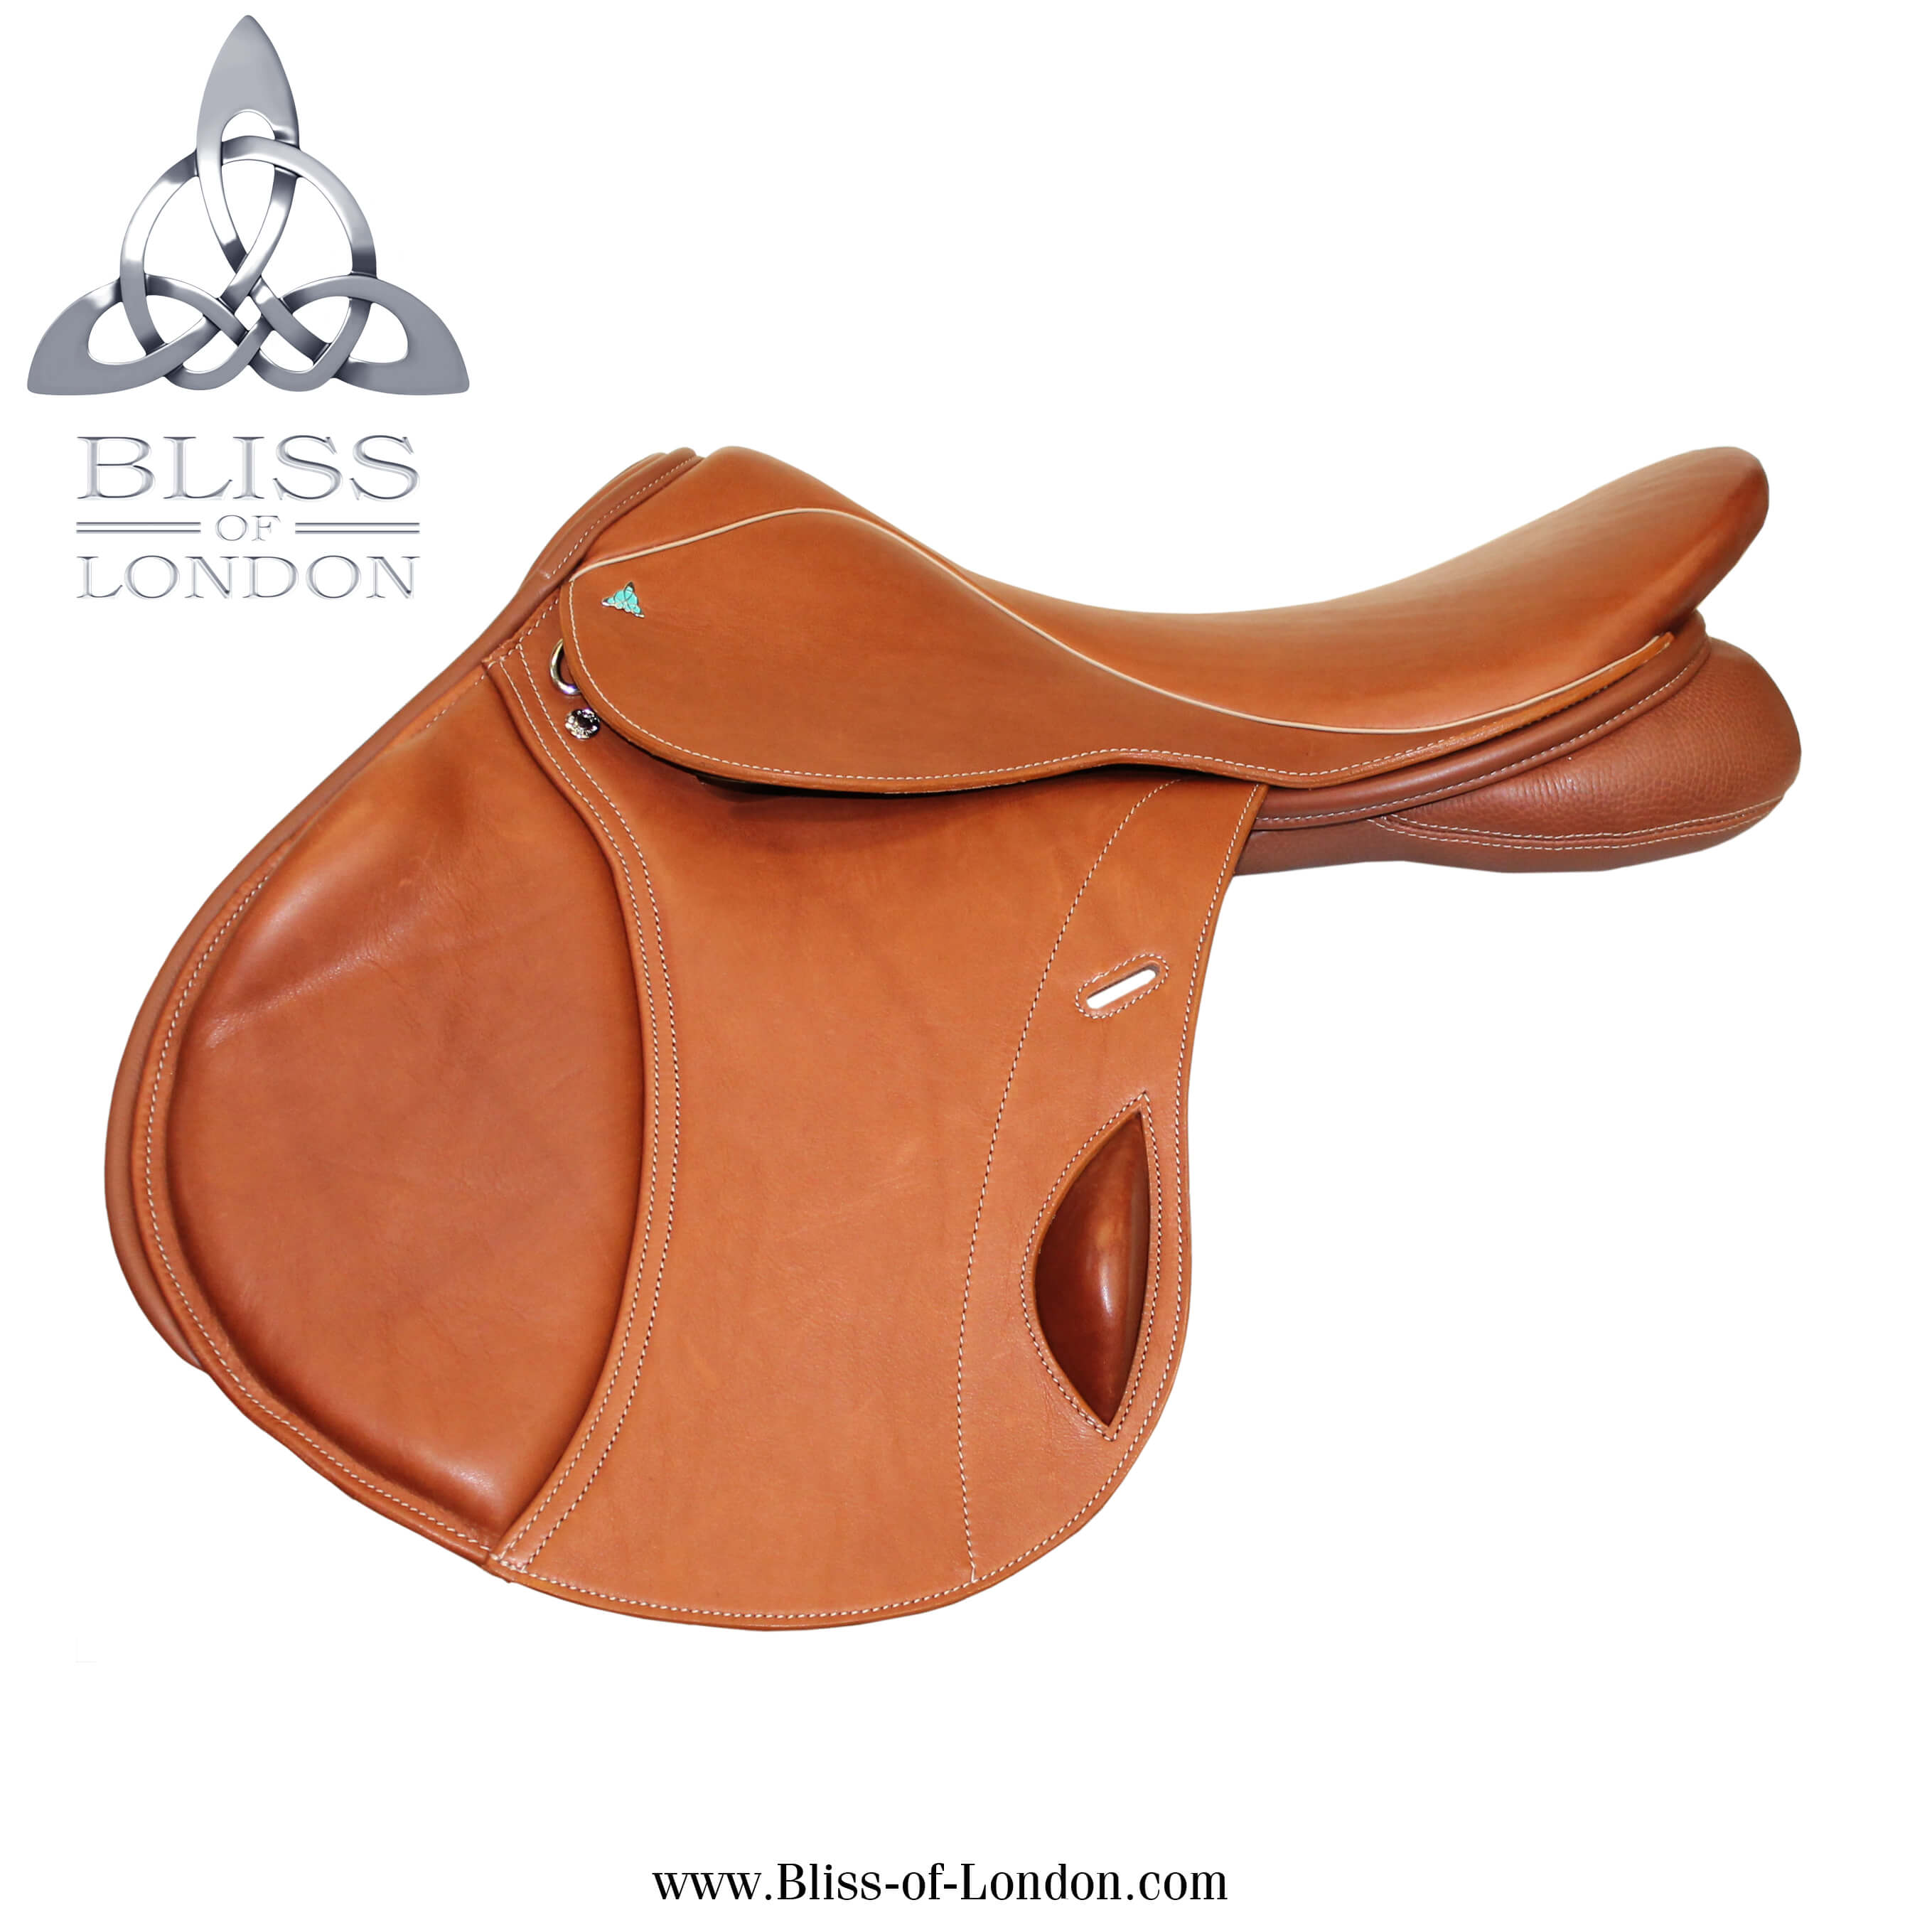 5 Bliss Liberty Eventer Cognac